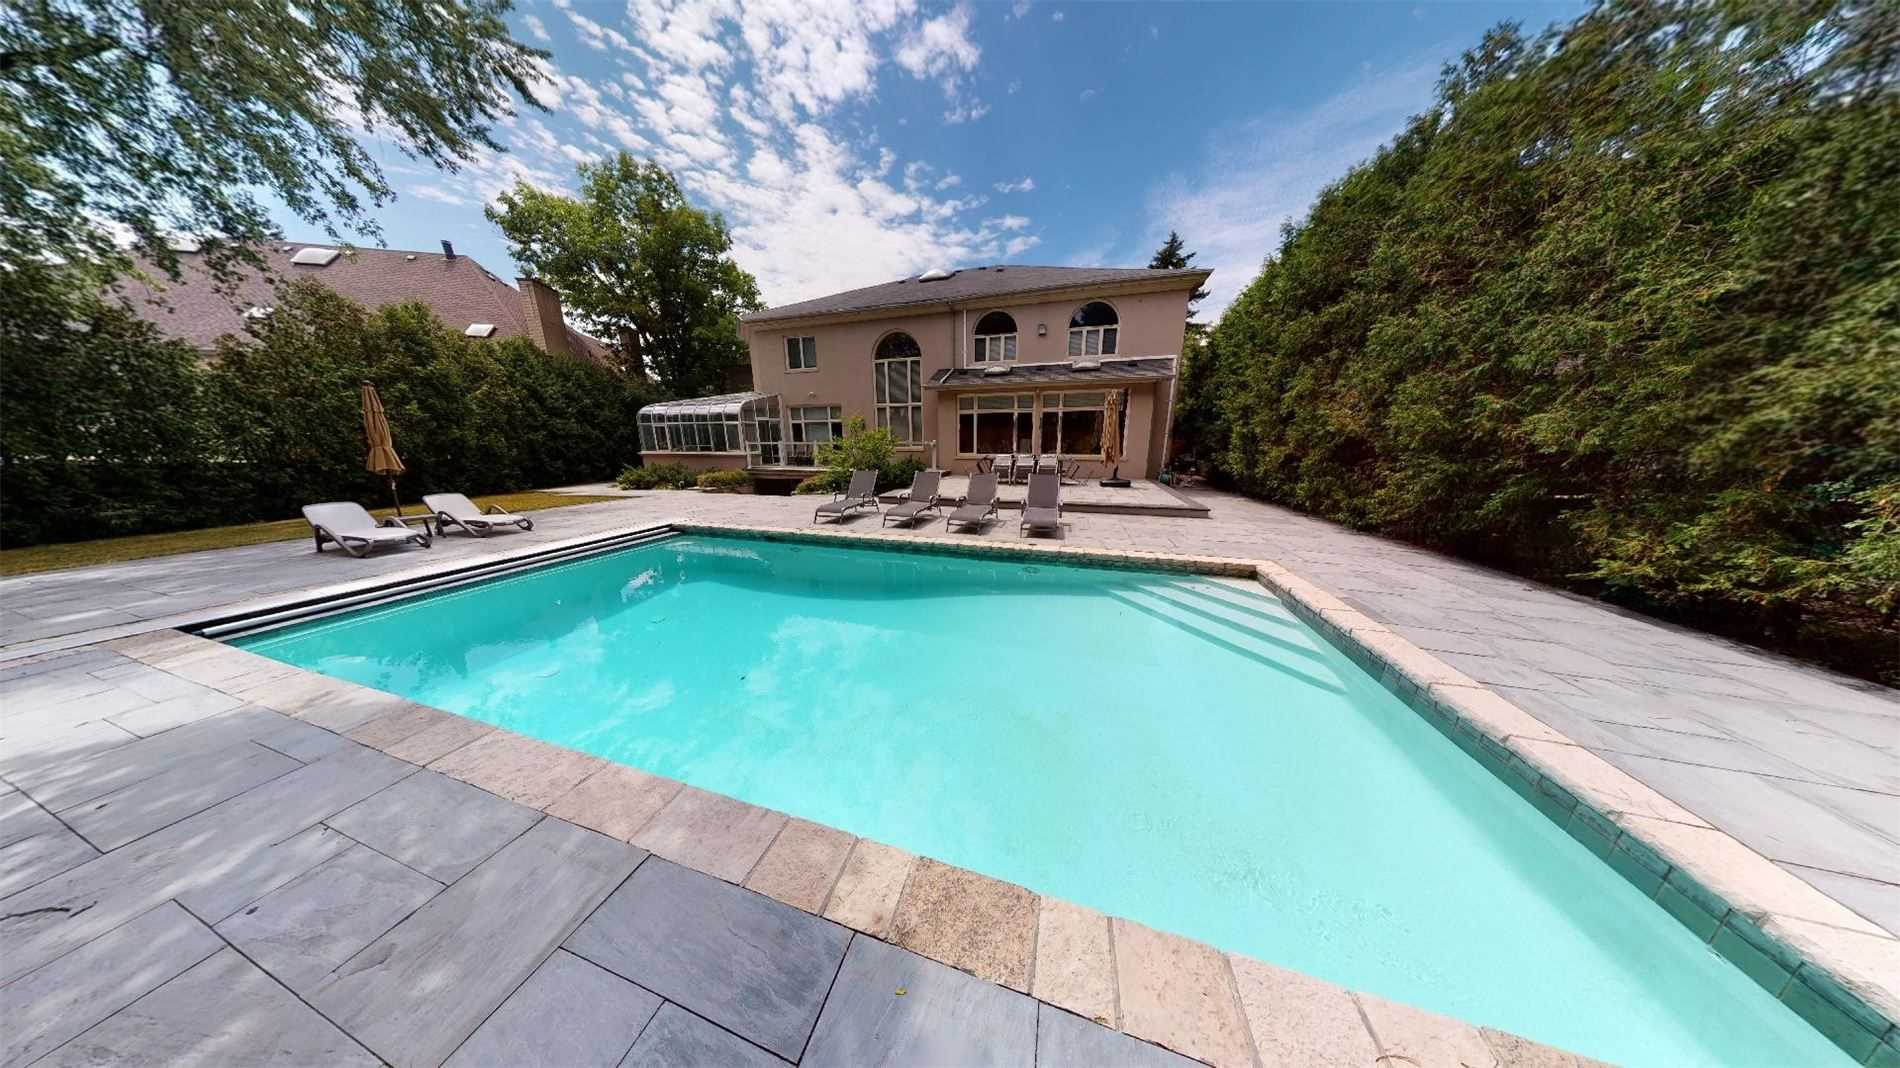 16 Oxbow Rd, Toronto, Ontario M3B2A2, 5 Bedrooms Bedrooms, 11 Rooms Rooms,8 BathroomsBathrooms,Detached,For Sale,Oxbow,C4916268